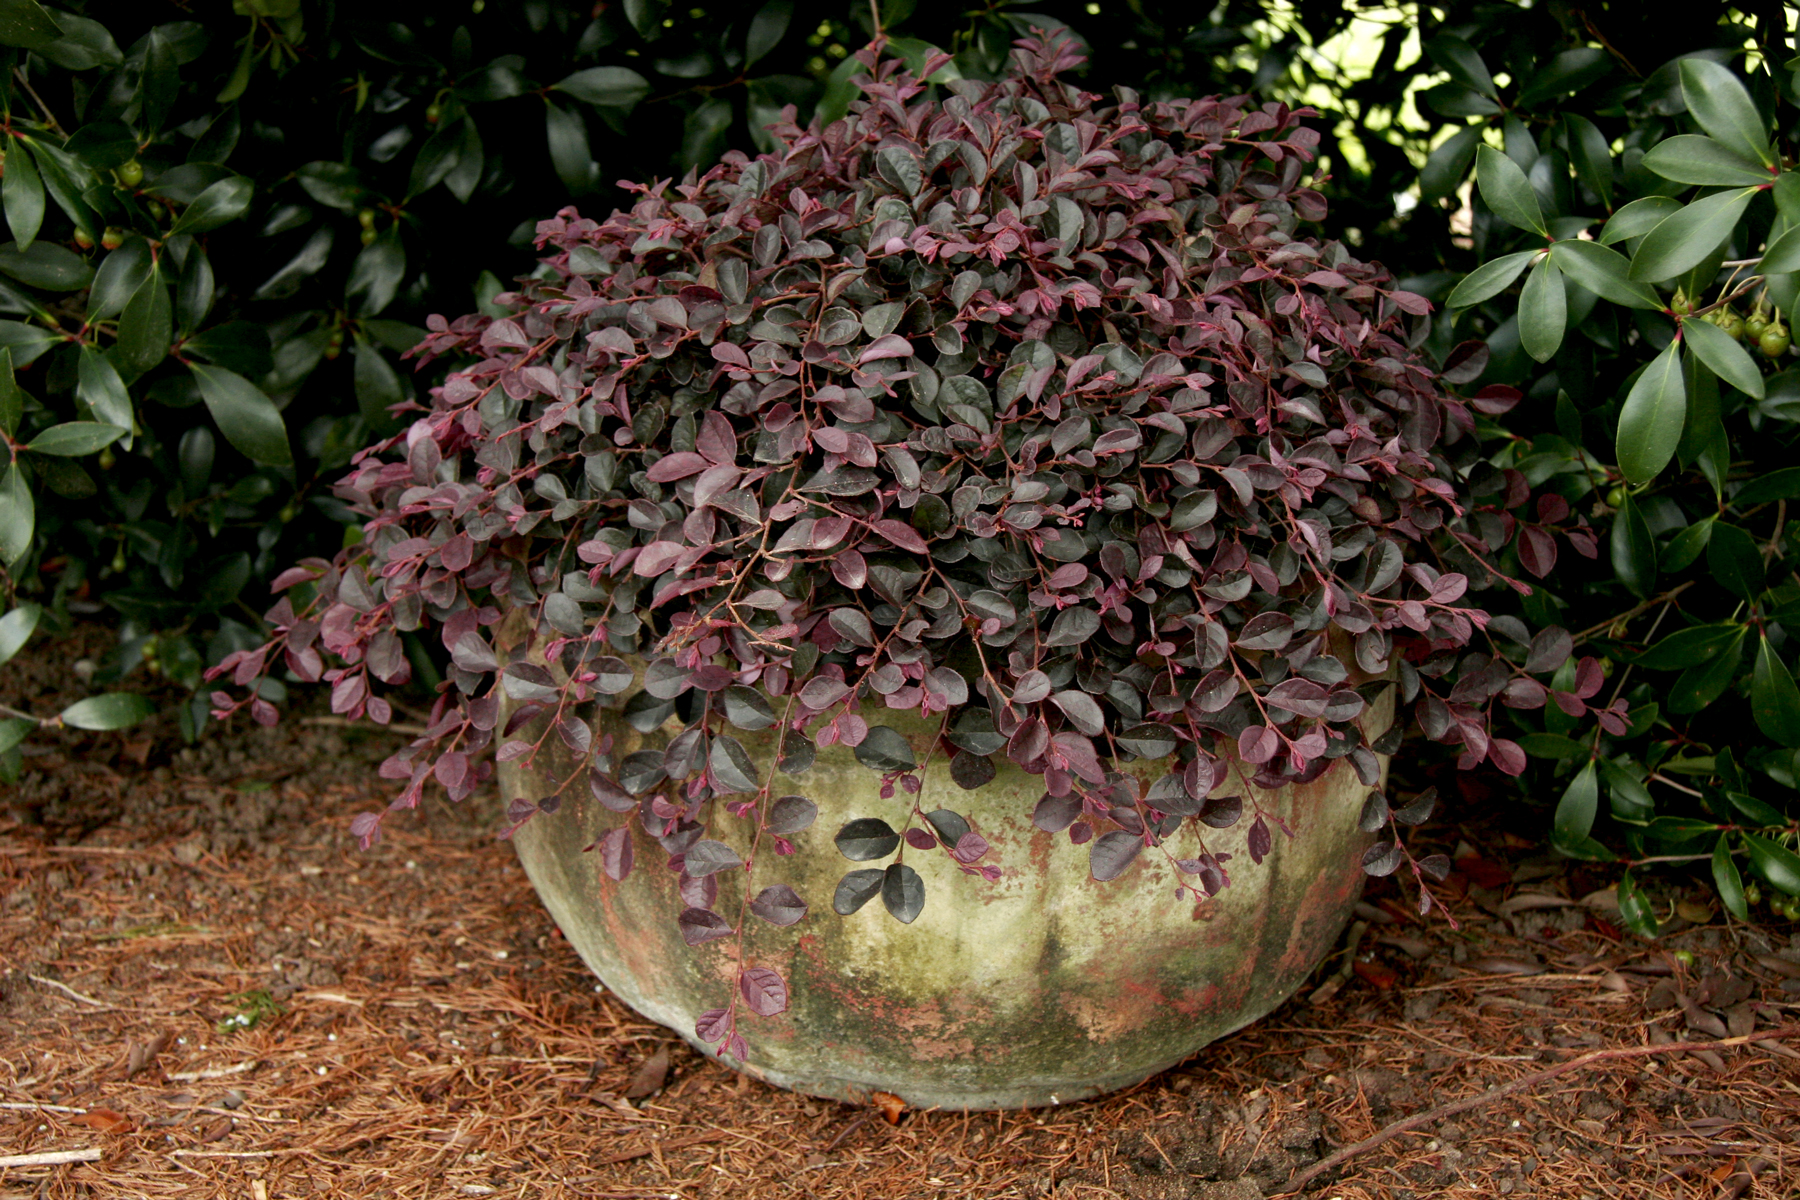 'Purple Pixie' dwarf loropetalum